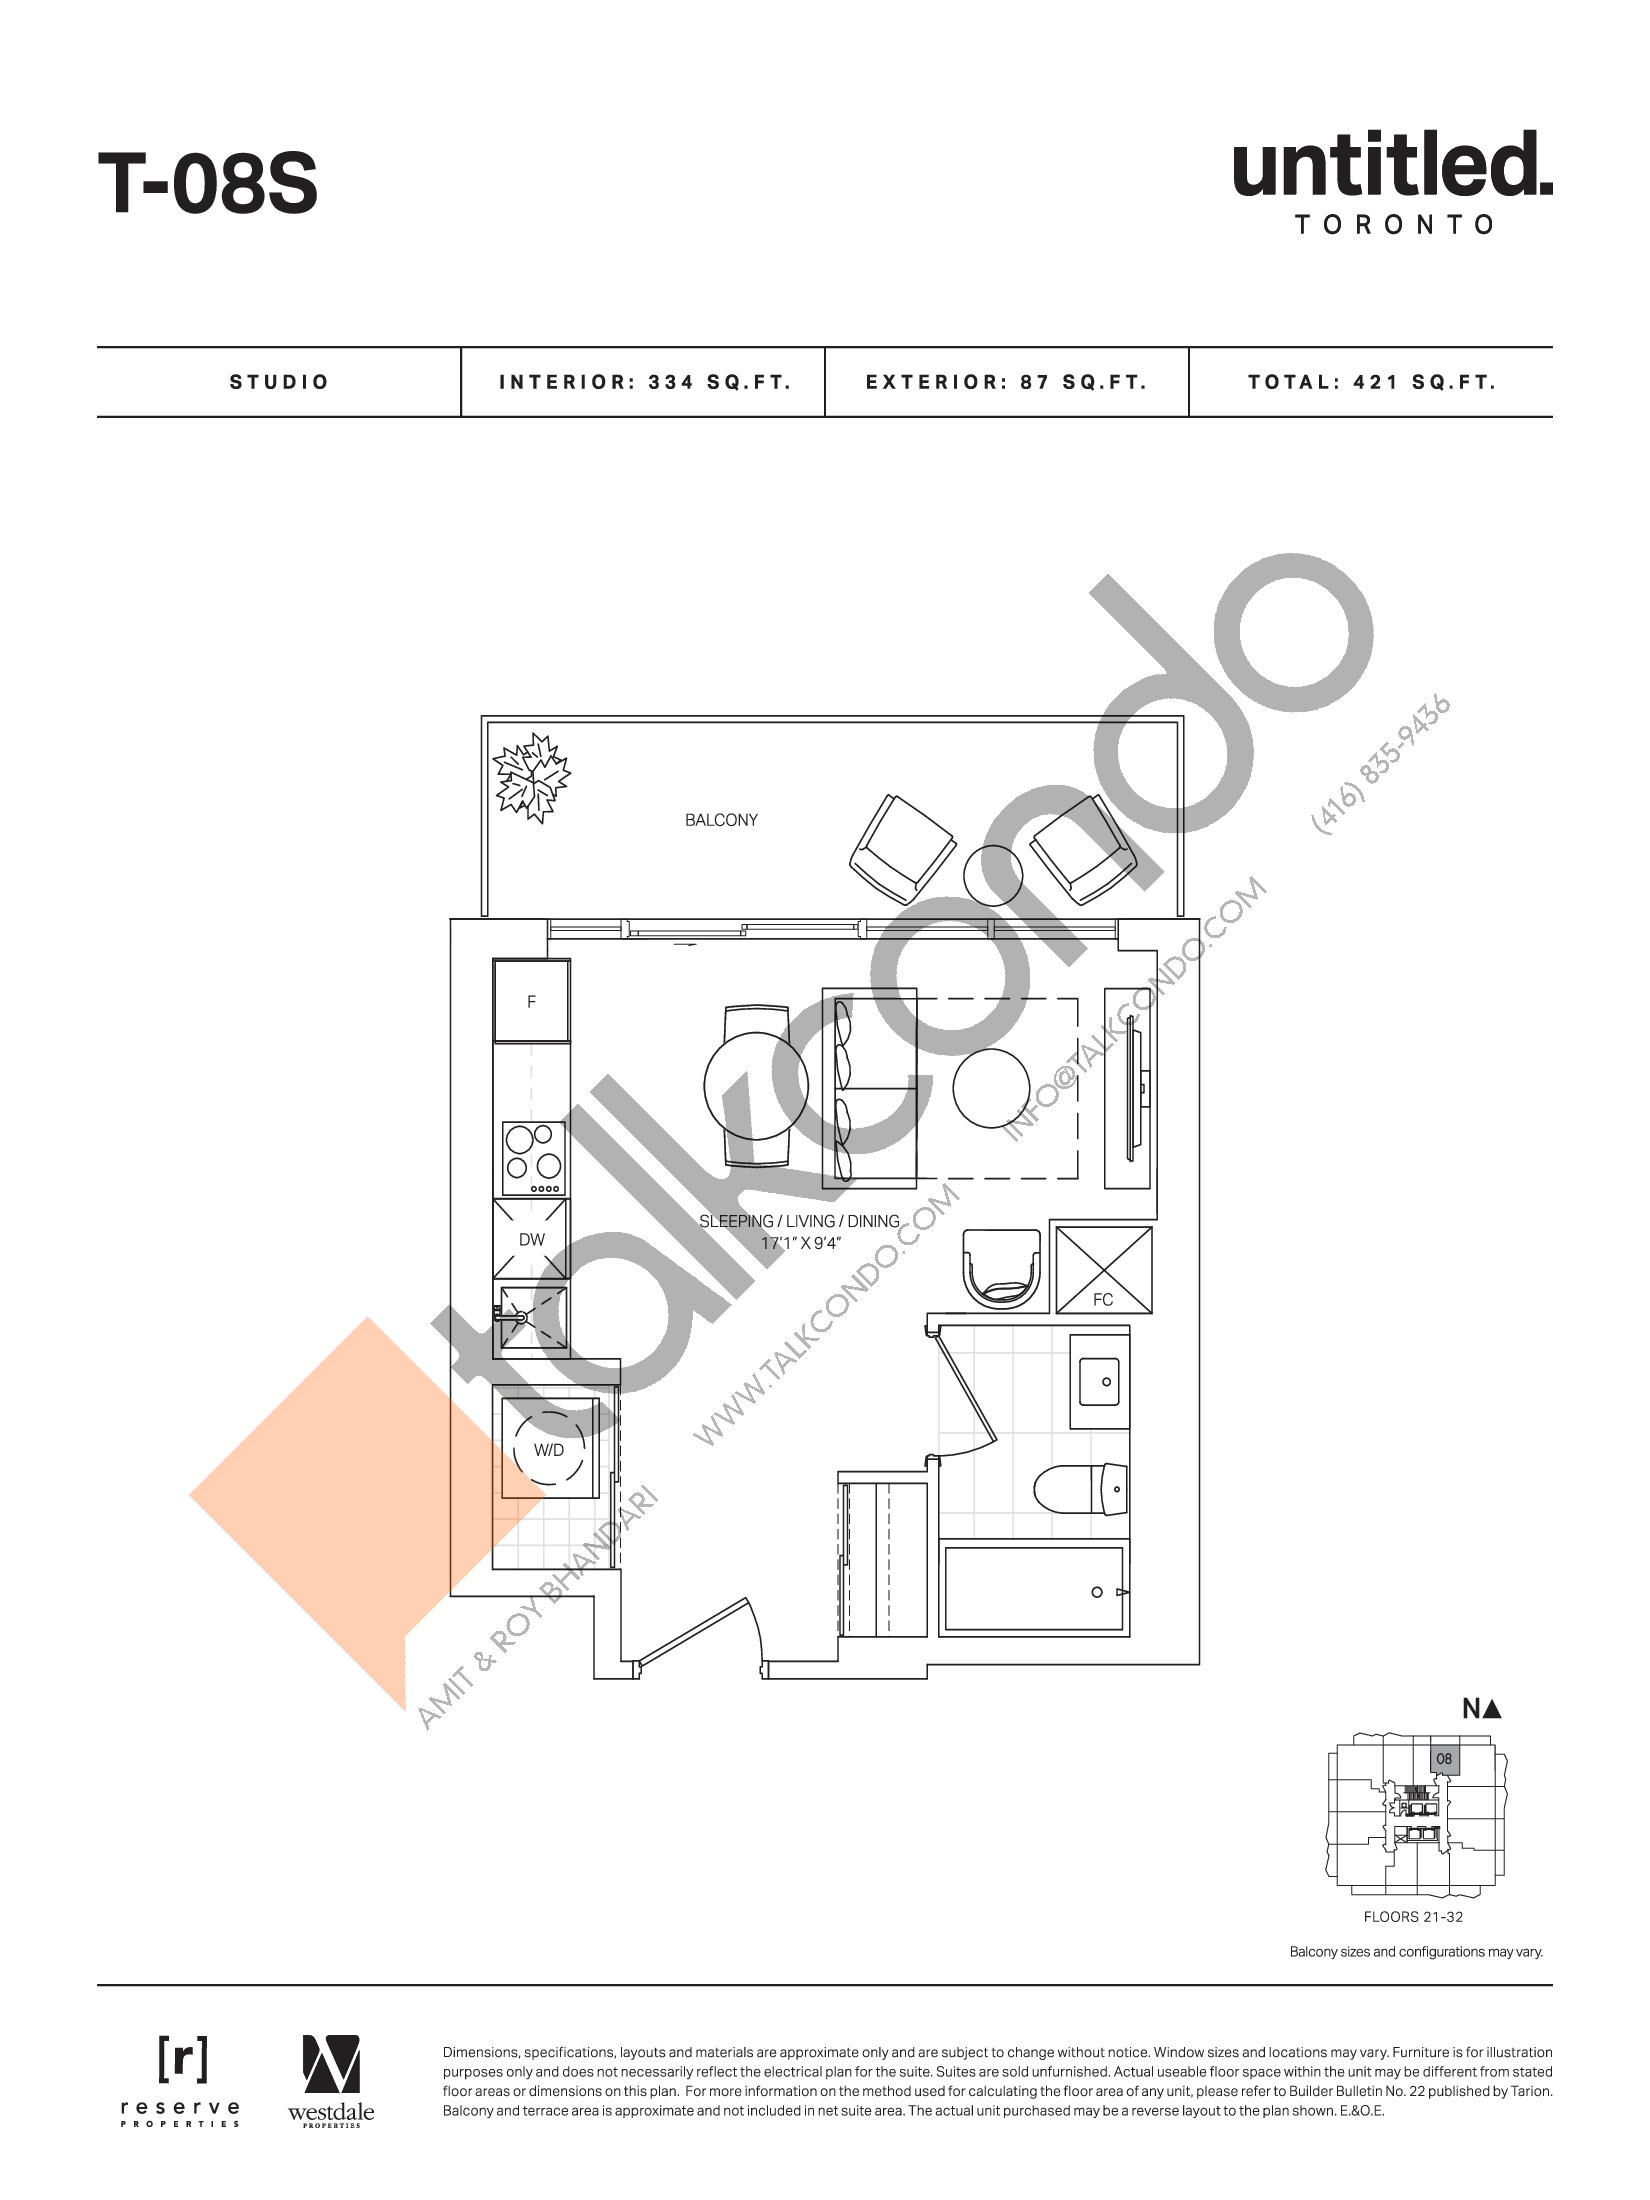 T-08S (Floor 21-32) Floor Plan at Untitled Toronto Condos - 334 sq.ft